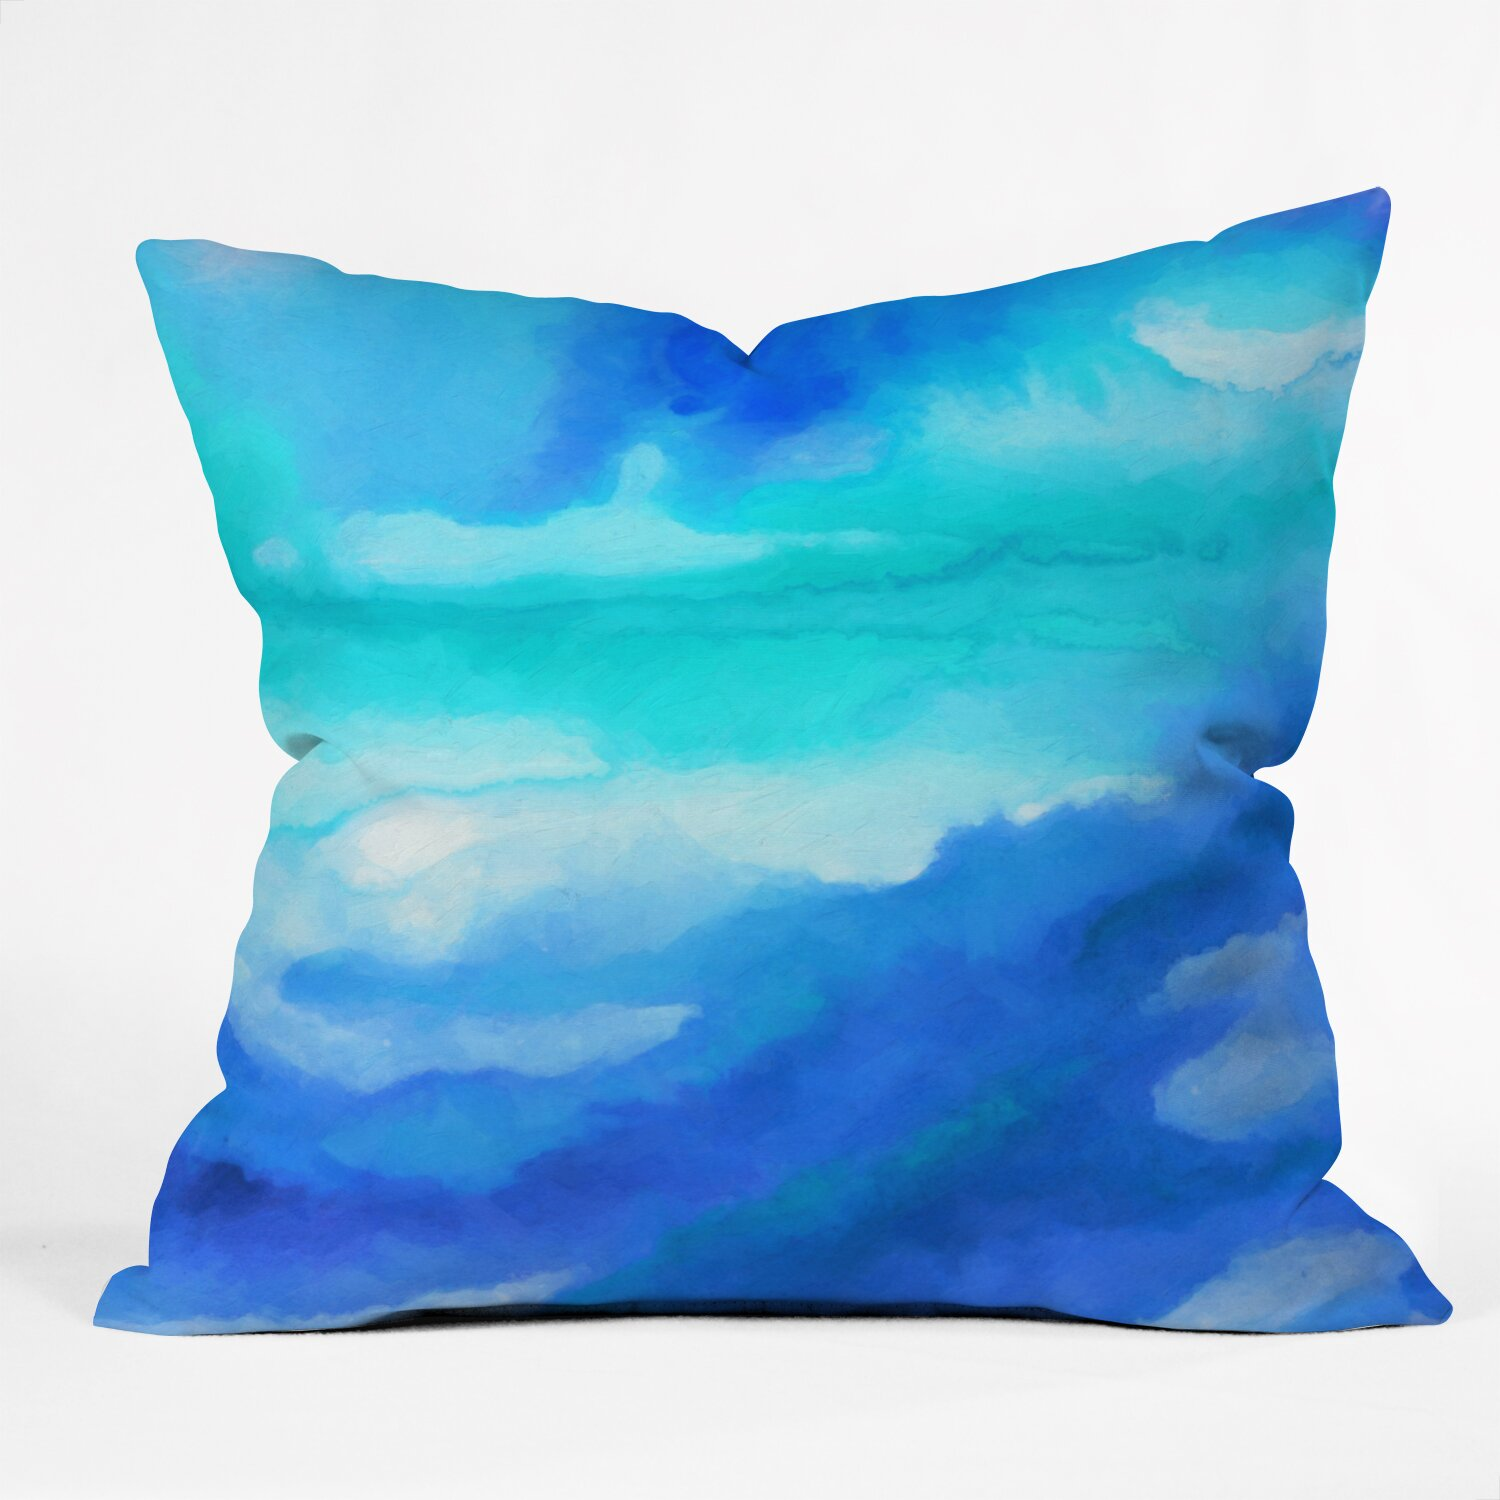 Decorative Pillow Designs : DENY Designs Jacqueline Maldonado Rise Throw Pillow & Reviews Wayfair